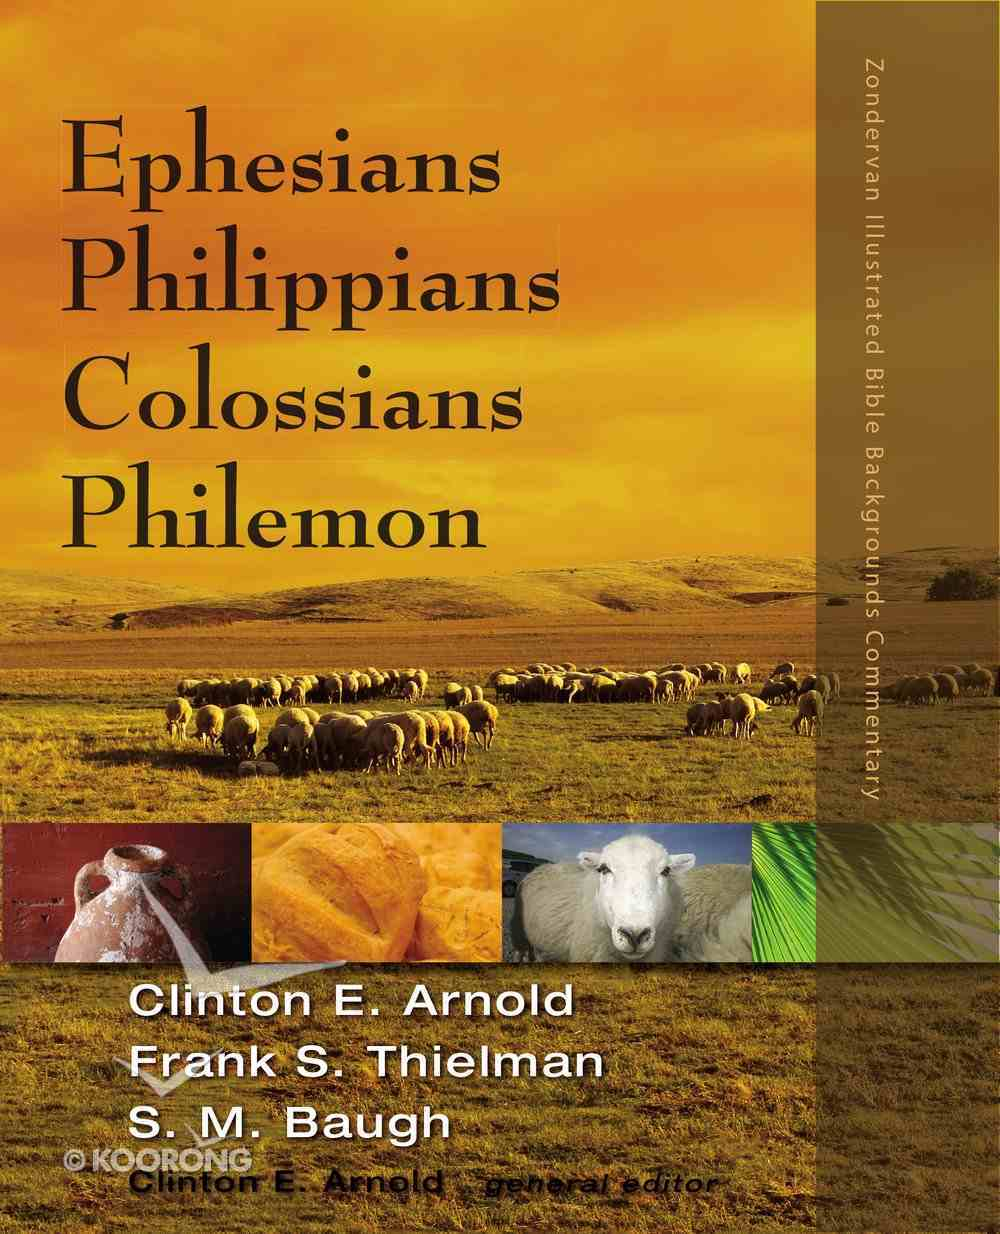 Ephesians, Philippians, Colossians, Philemon (Zondervan Illustrated Bible Backgrounds Commentary Series) eBook